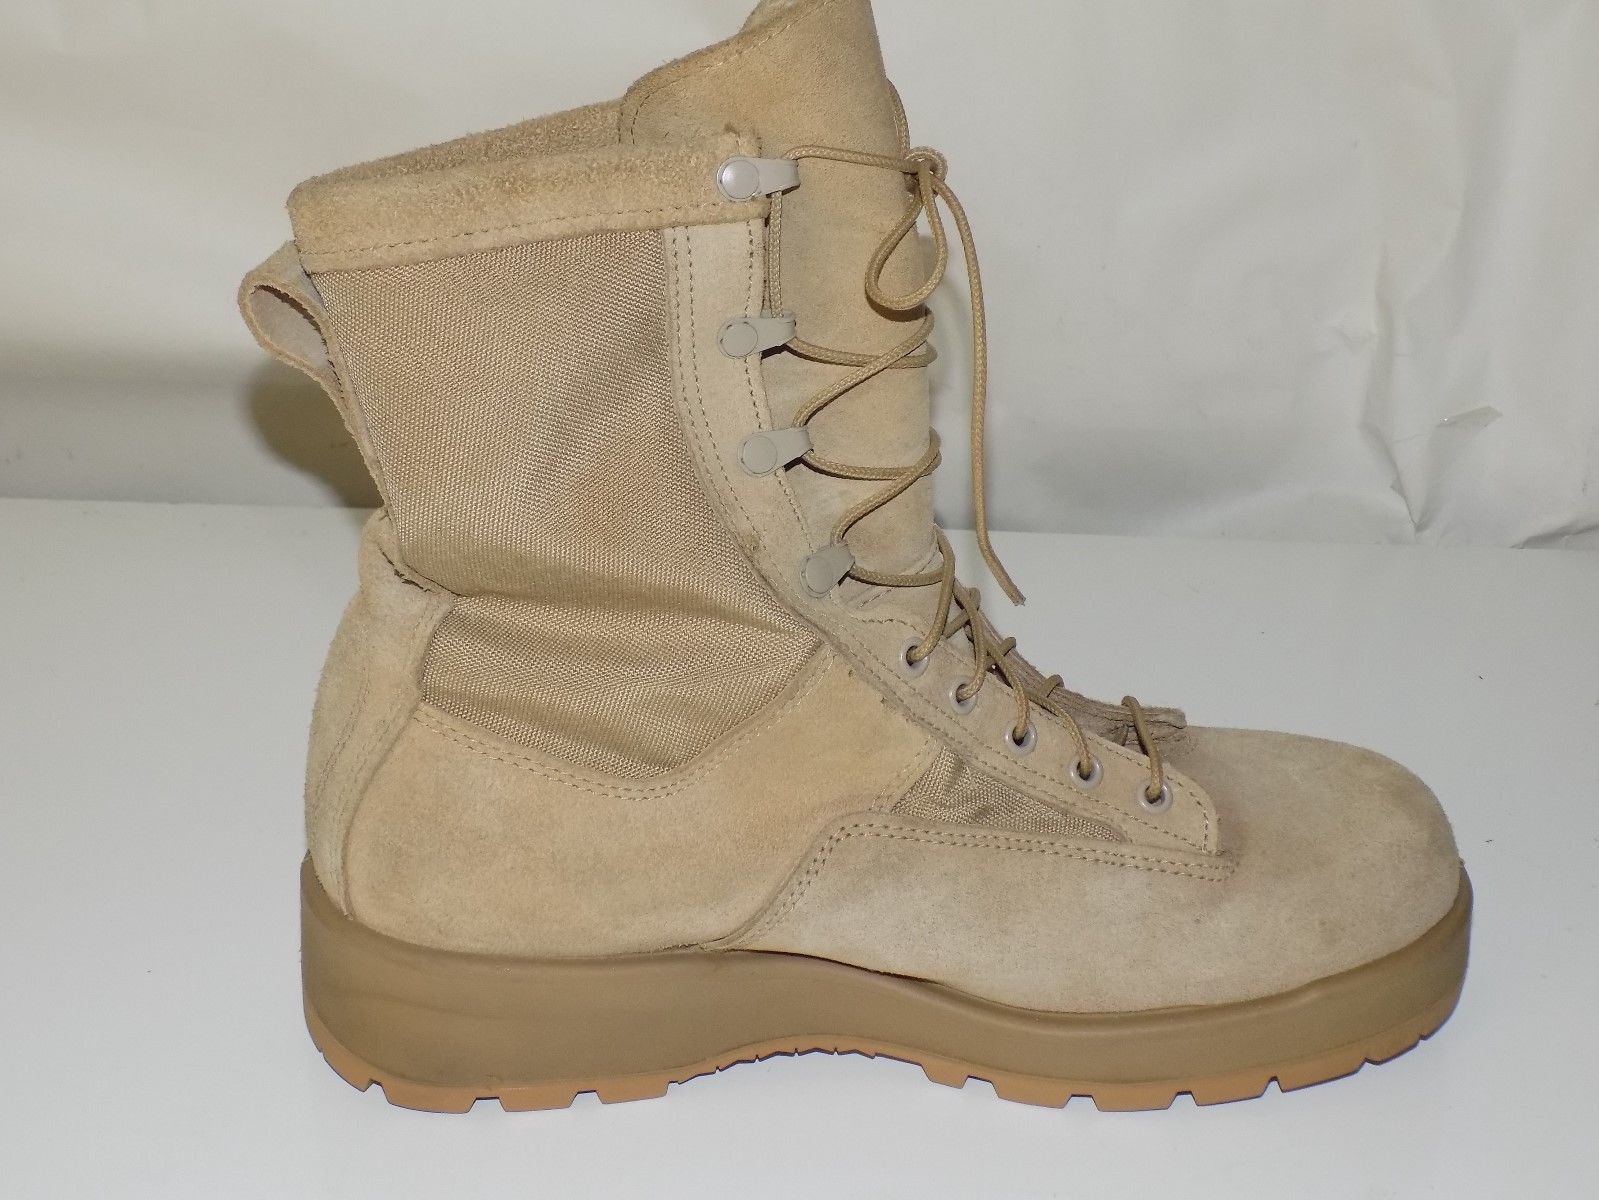 b03323142ca Redwings, Vibram Sole; Steel Toe, Brown and 50 similar items